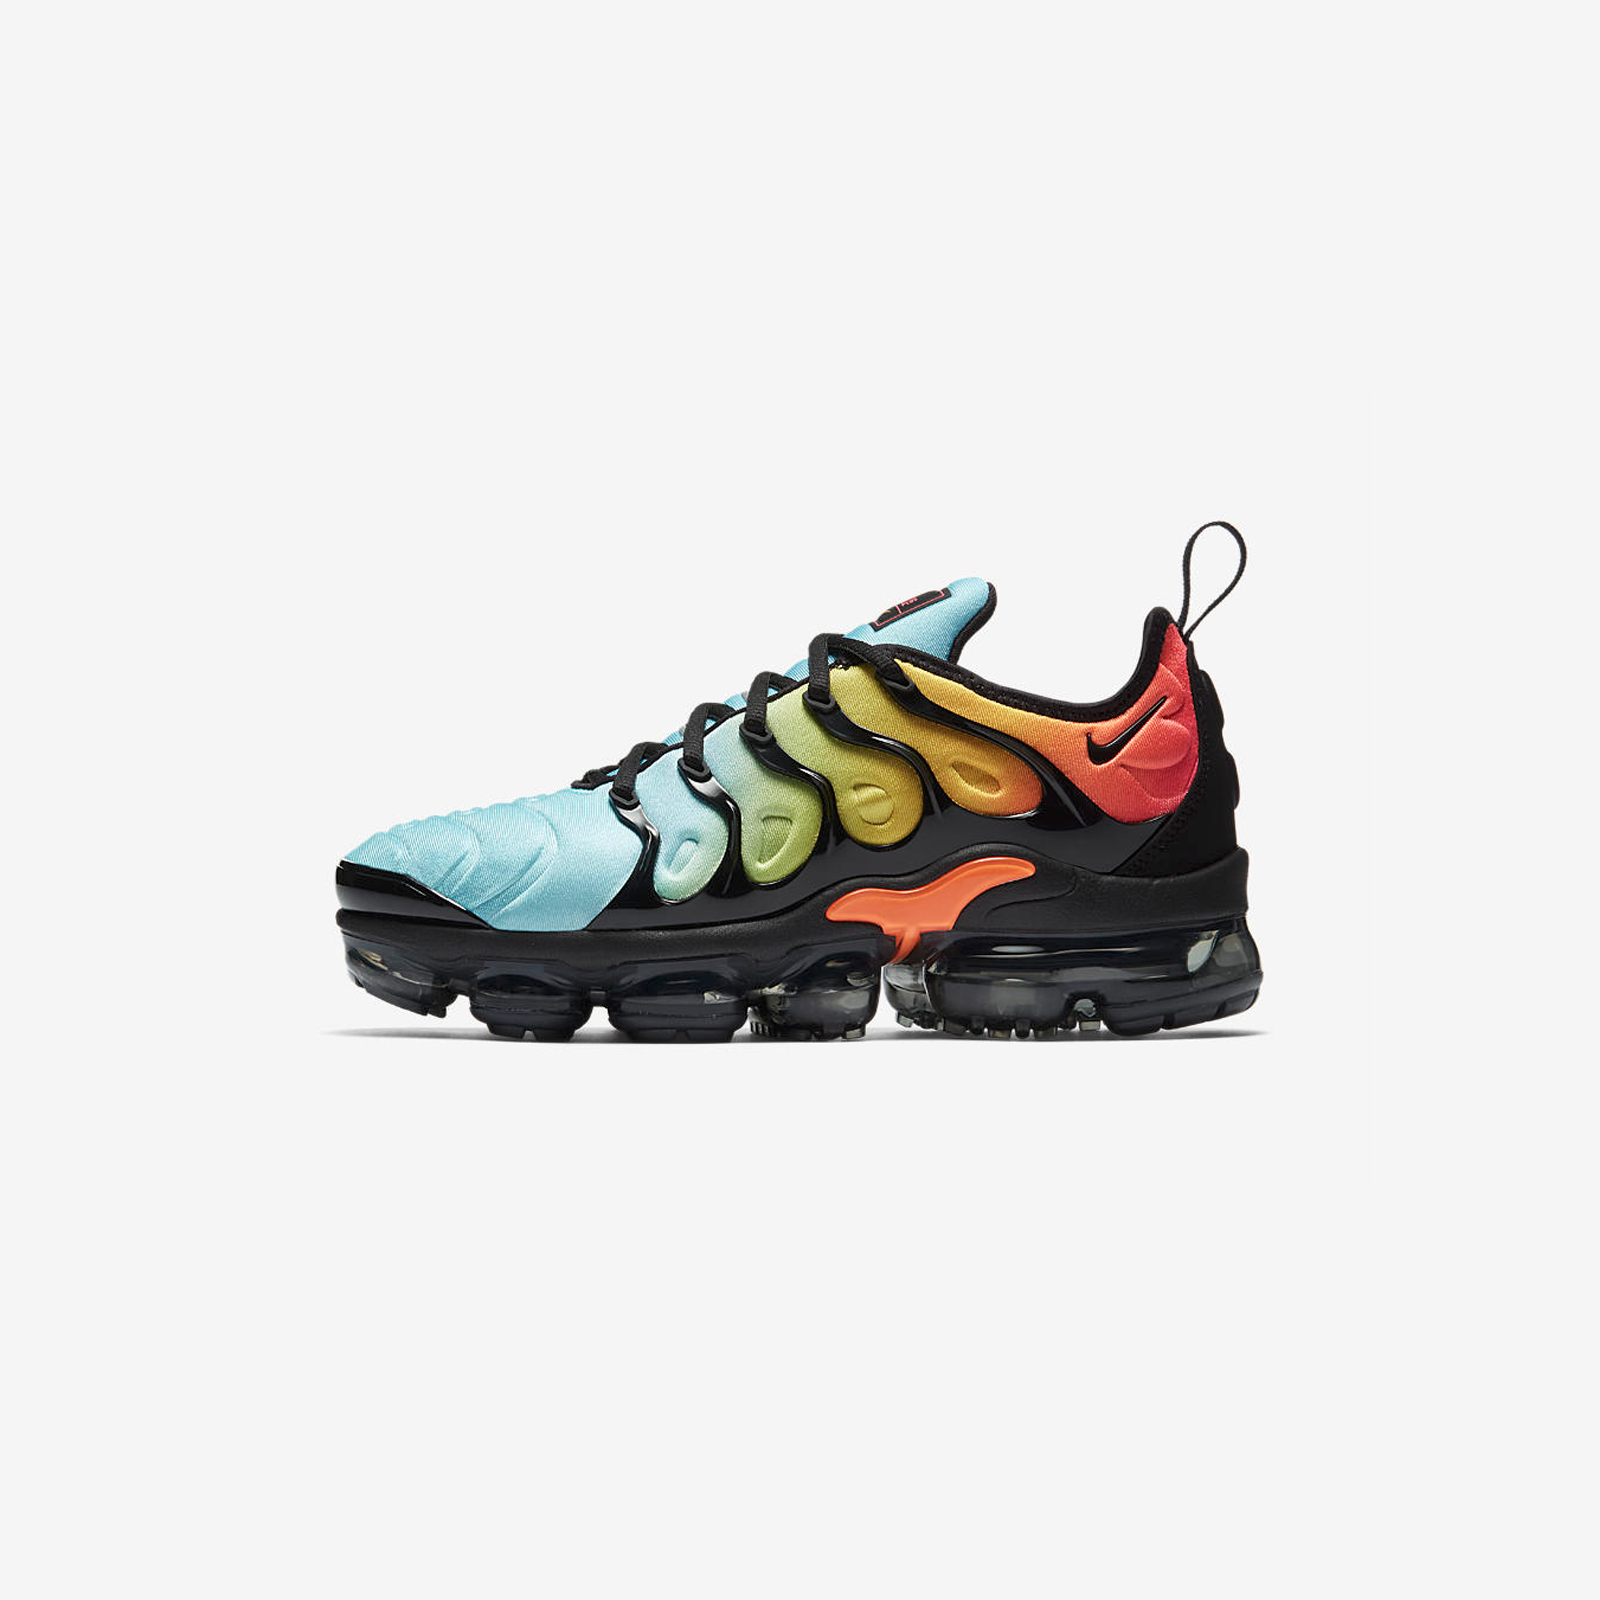 6a750c09b7 Nike Wmns Air Vapormax Plus - Ao4550-002 - Sneakersnstuff | sneakers ...